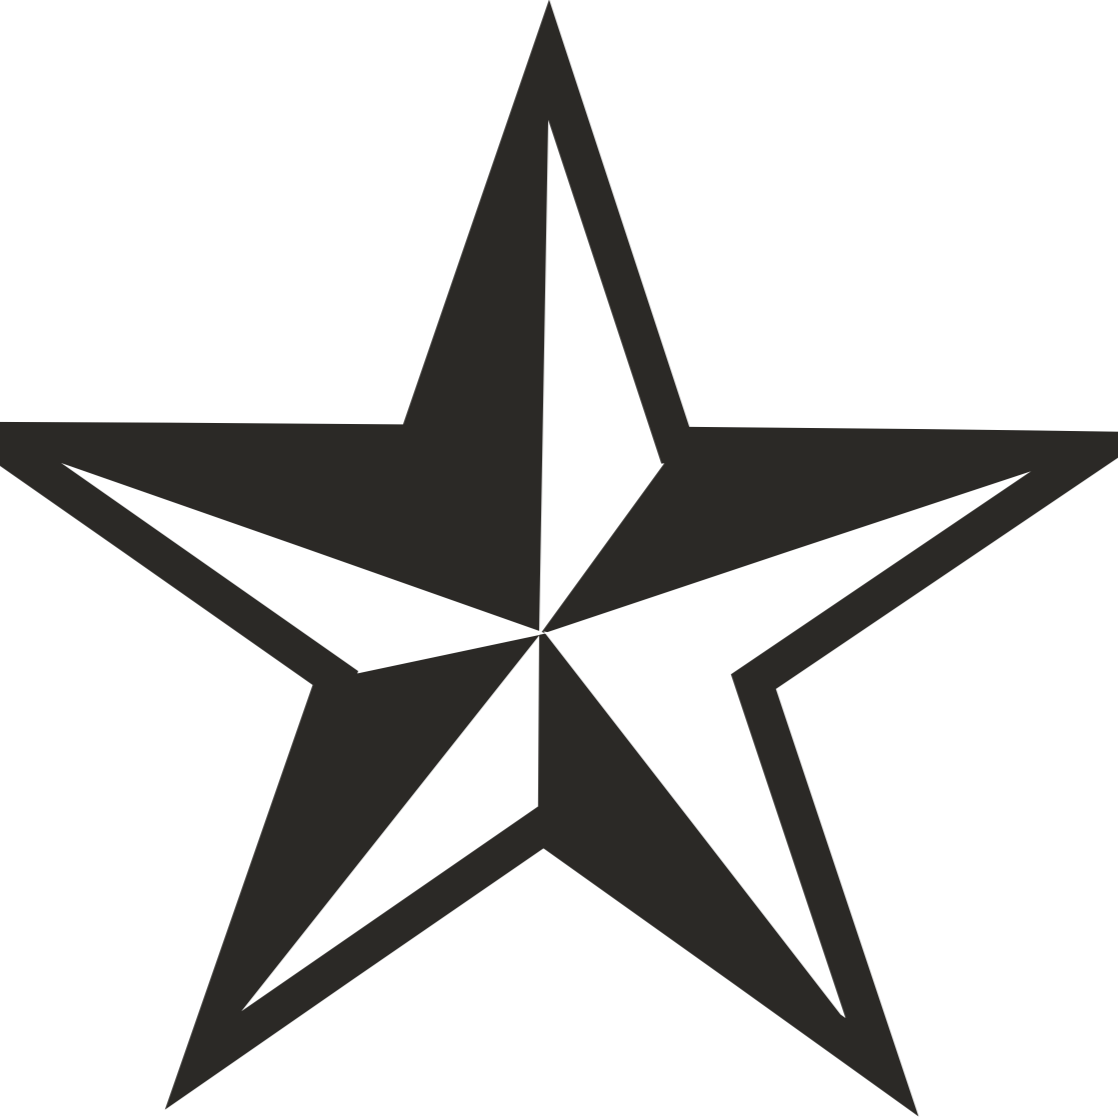 Nautical star outline free download best nautical star outline 1118x1117 texas star clip art many interesting cliparts biocorpaavc